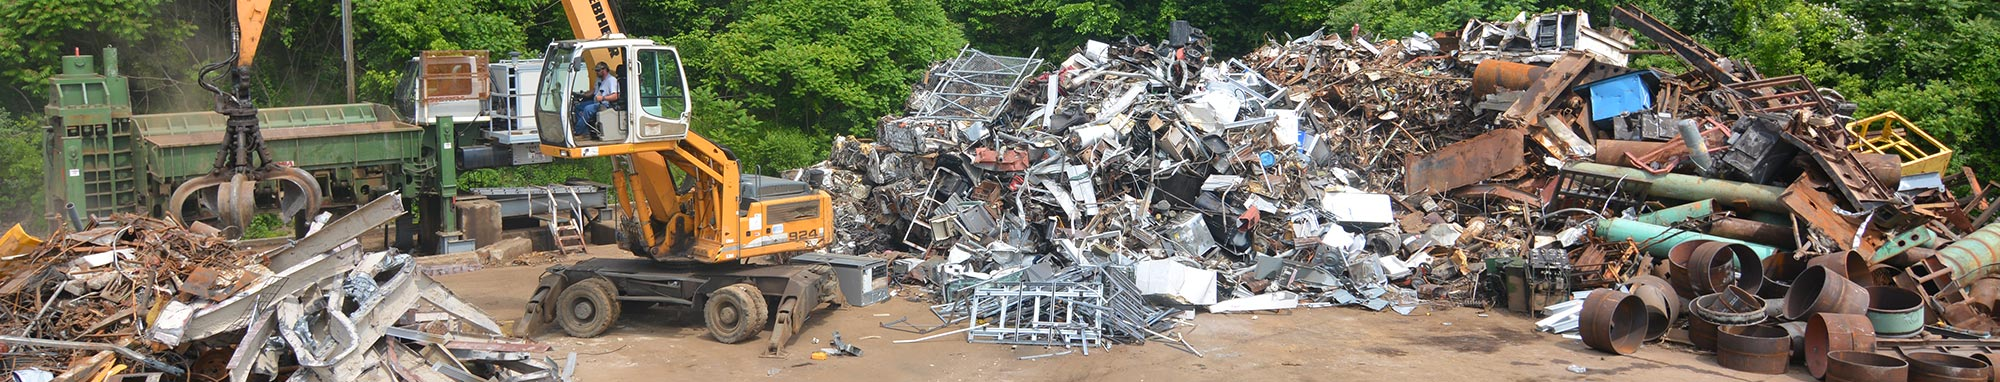 Cash for scrap metal recycling services in Fairmont, WV